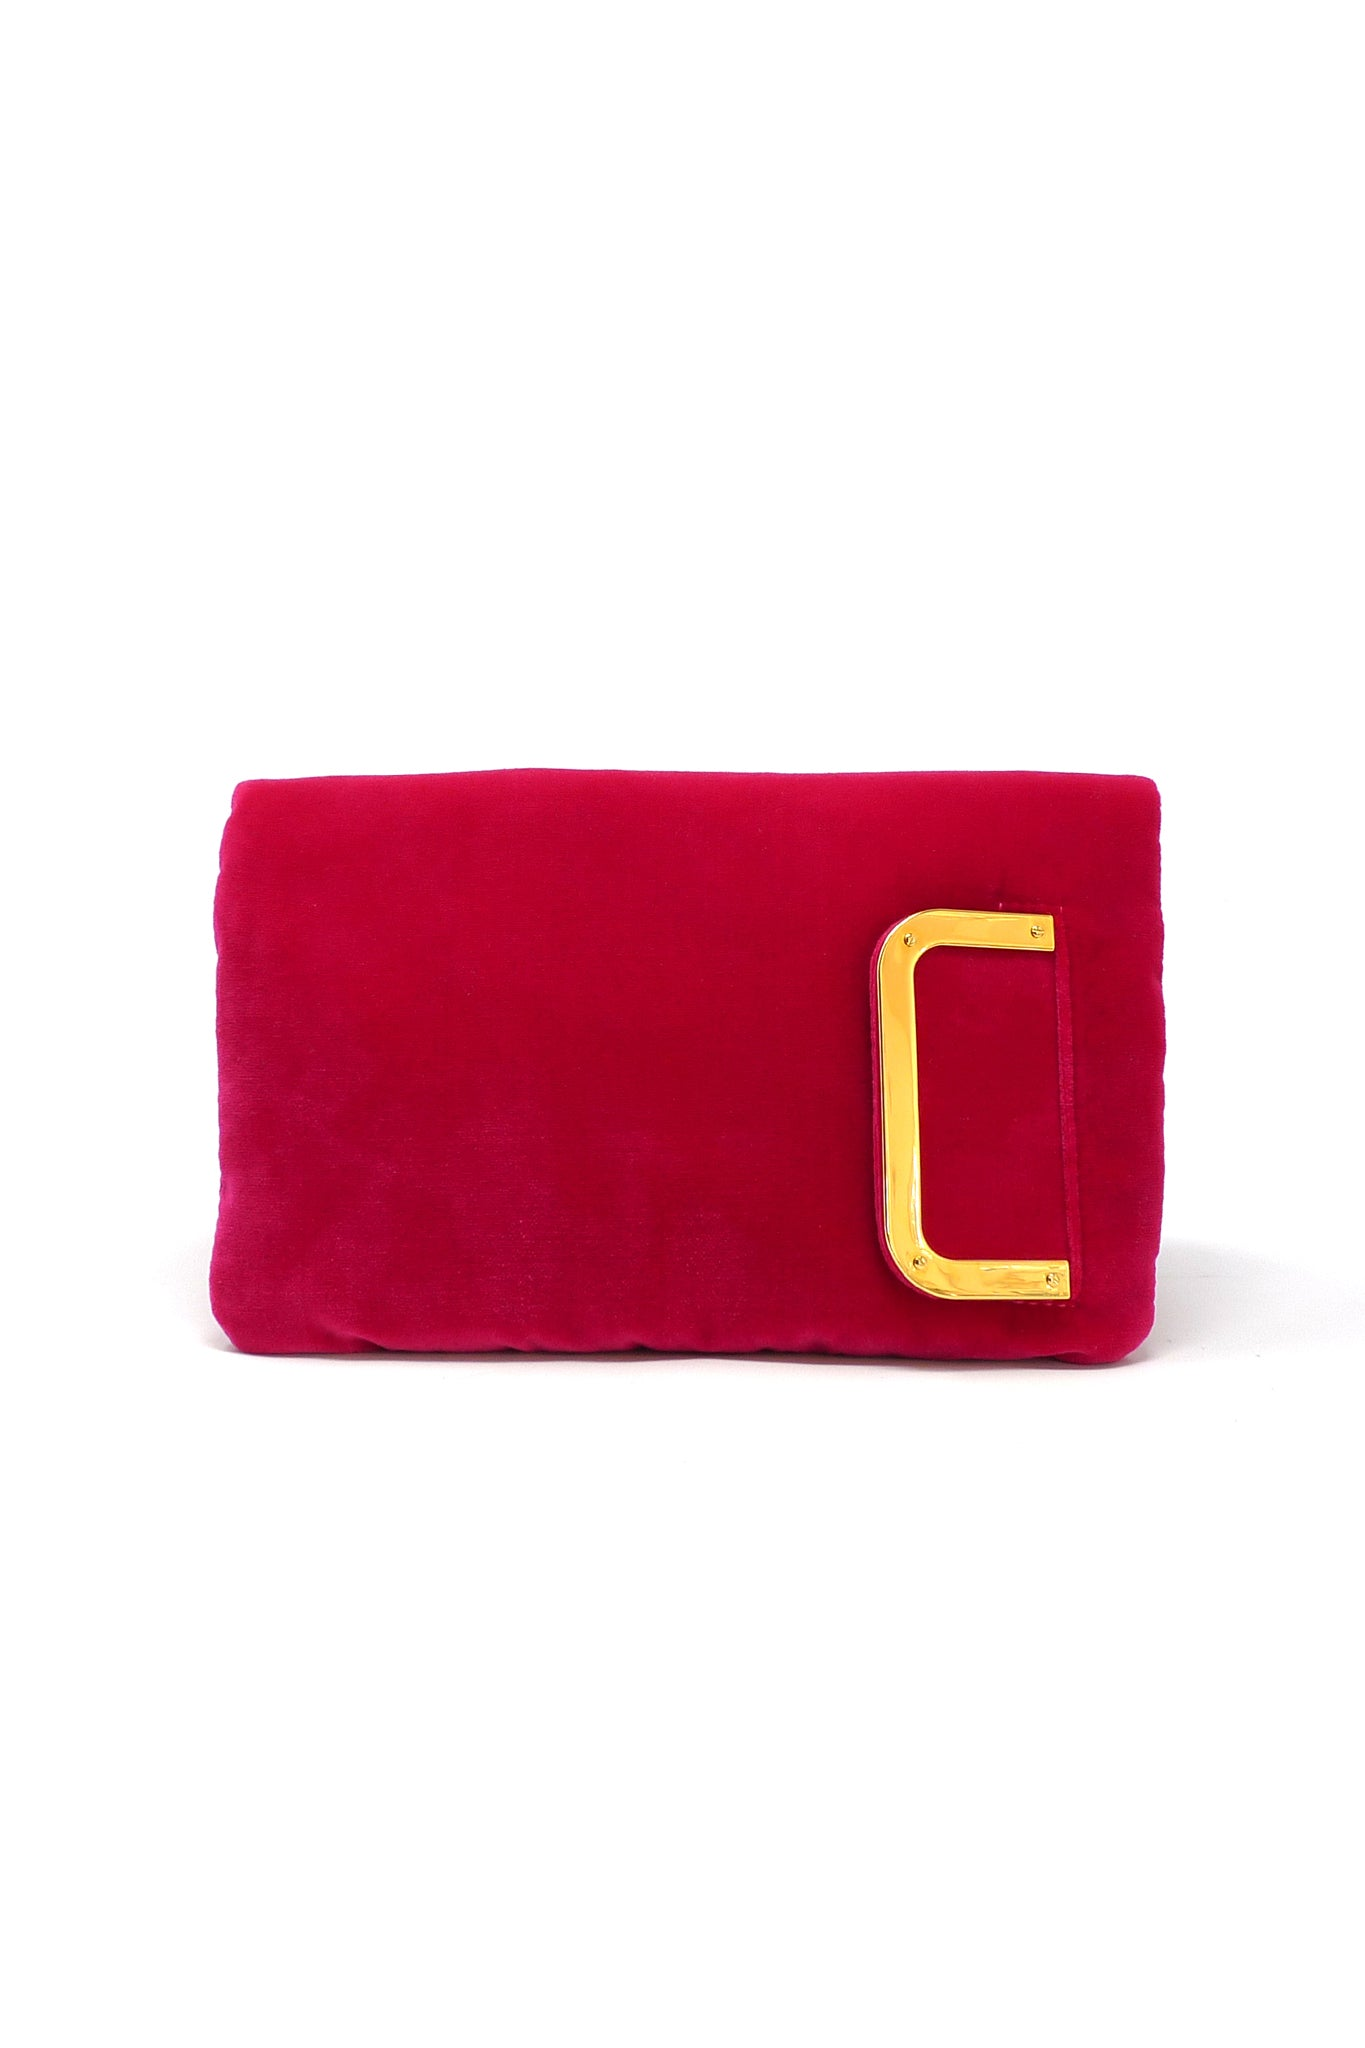 Aperitivo Clutch in Hot Pink Velvet